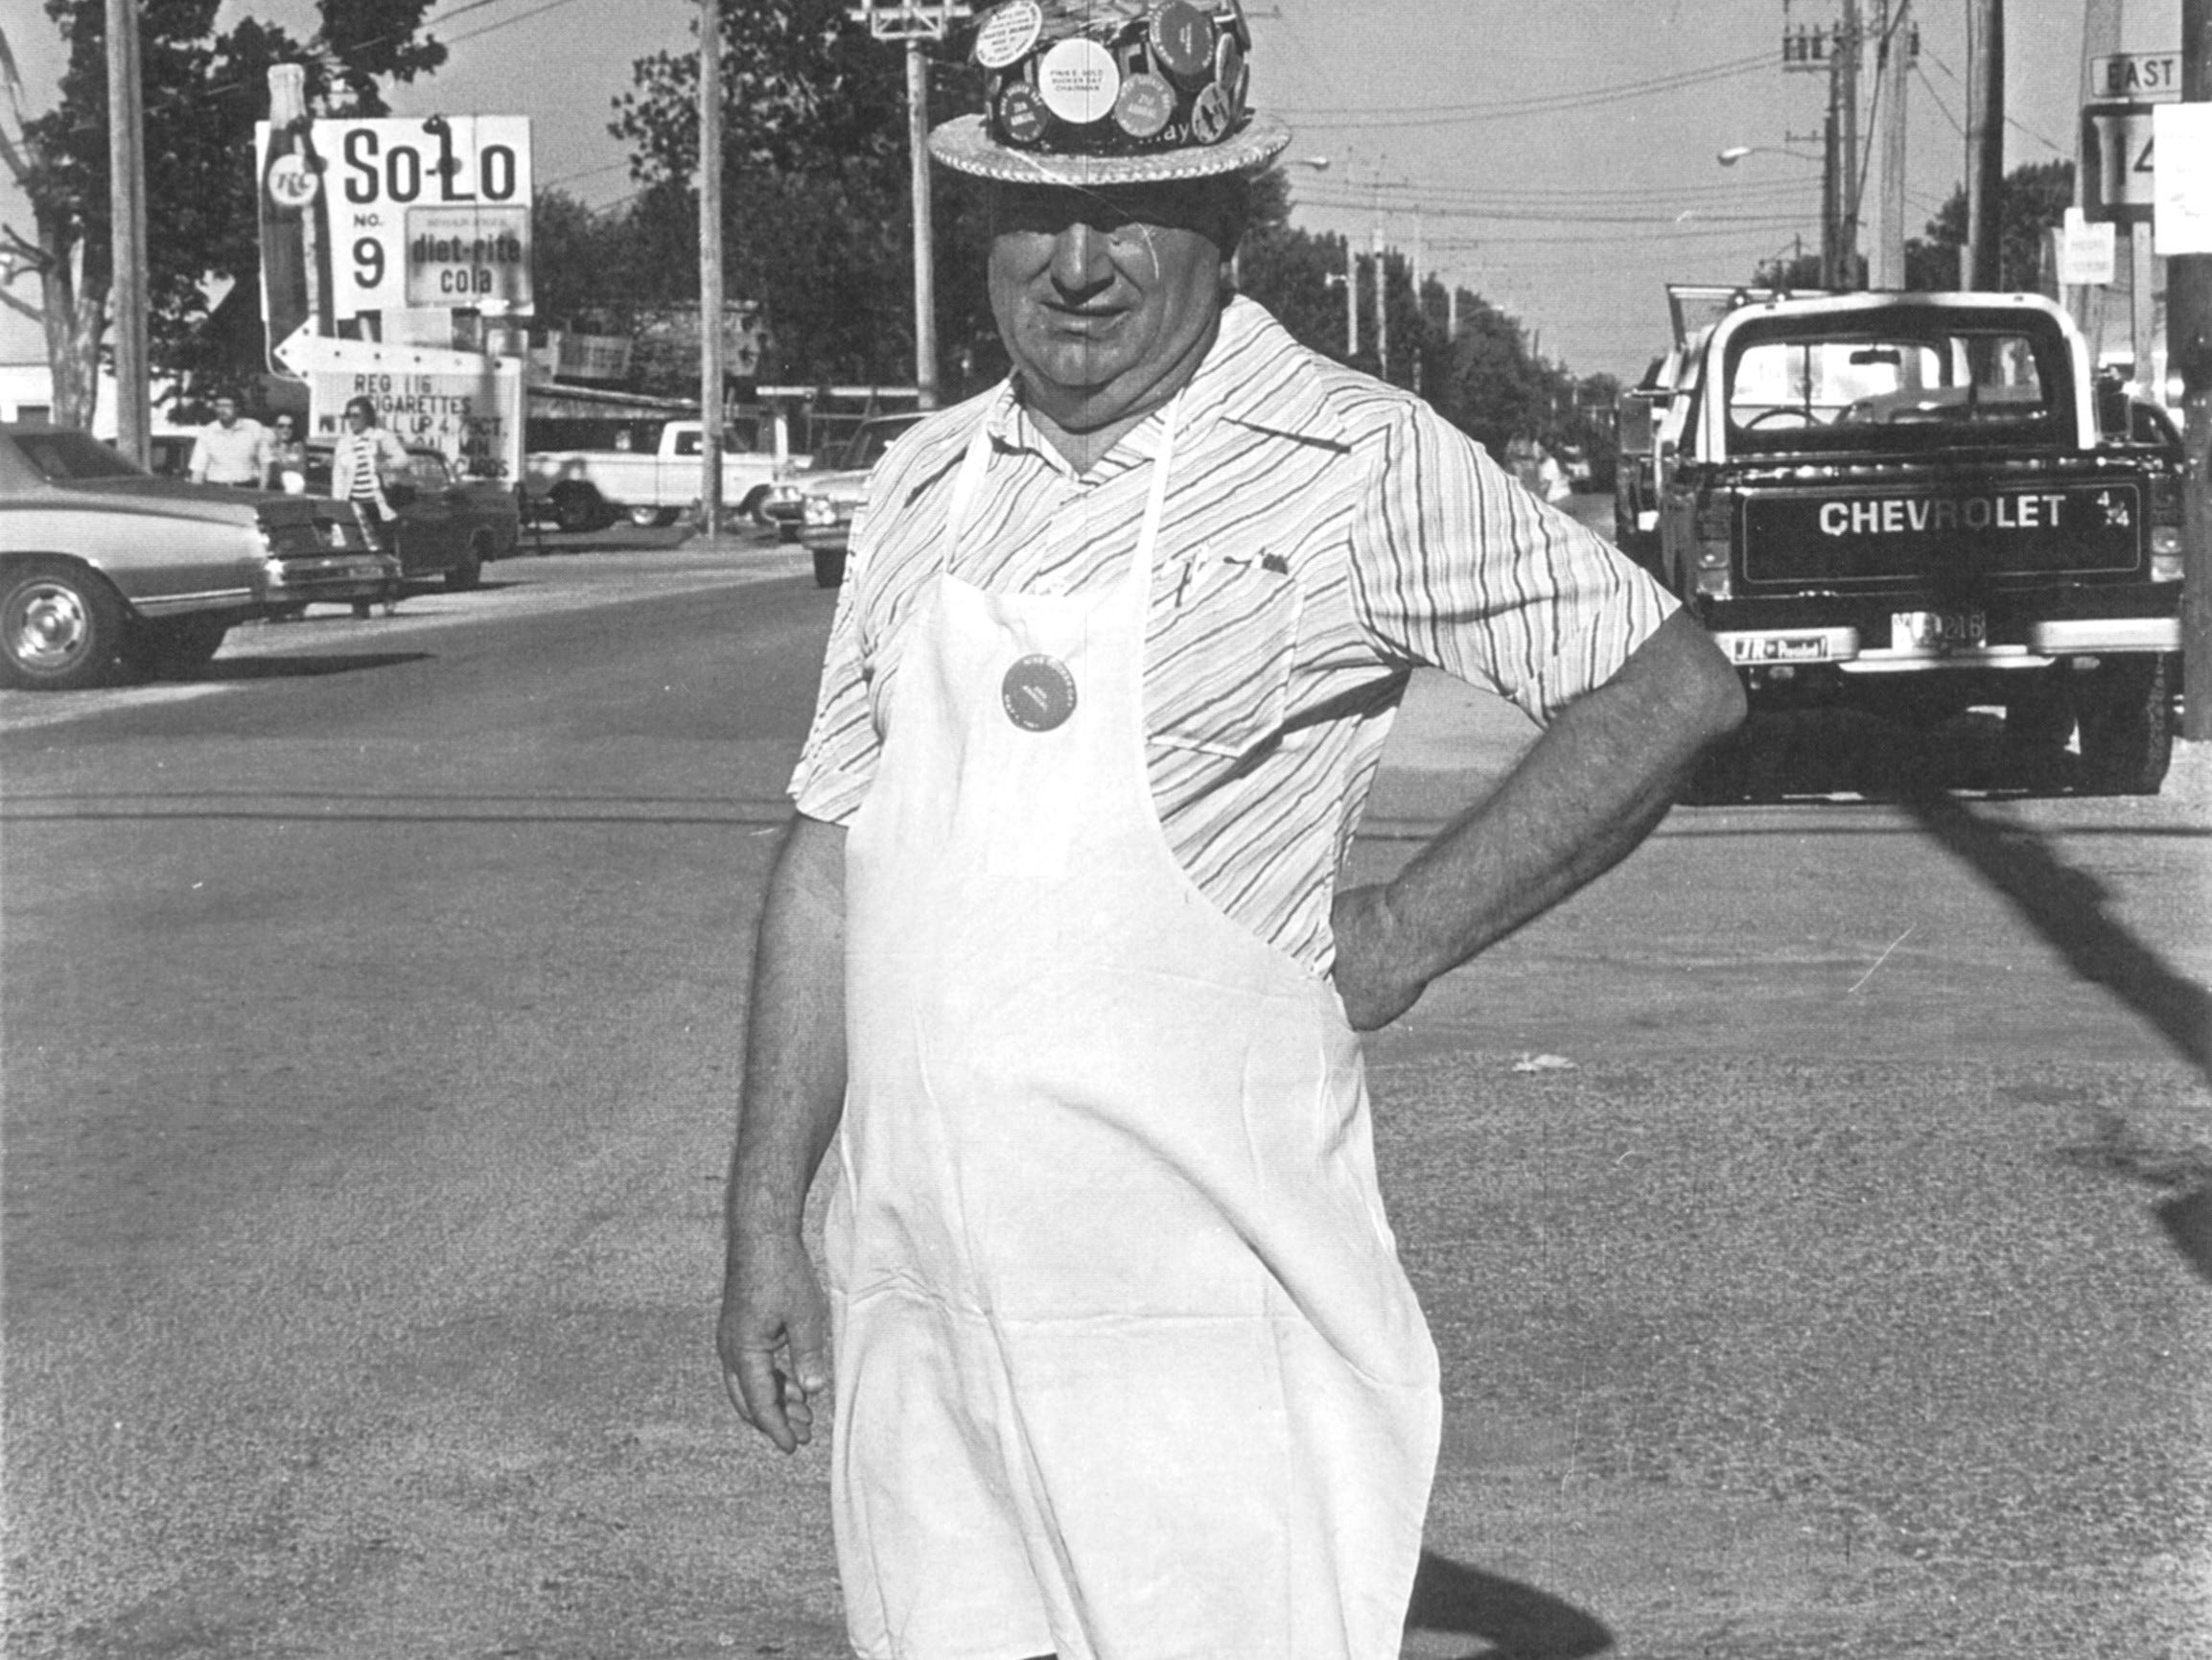 Finis Gold at Nixa's crossroads. A vintage Sucker Days photo from the city of Nixa's collection.